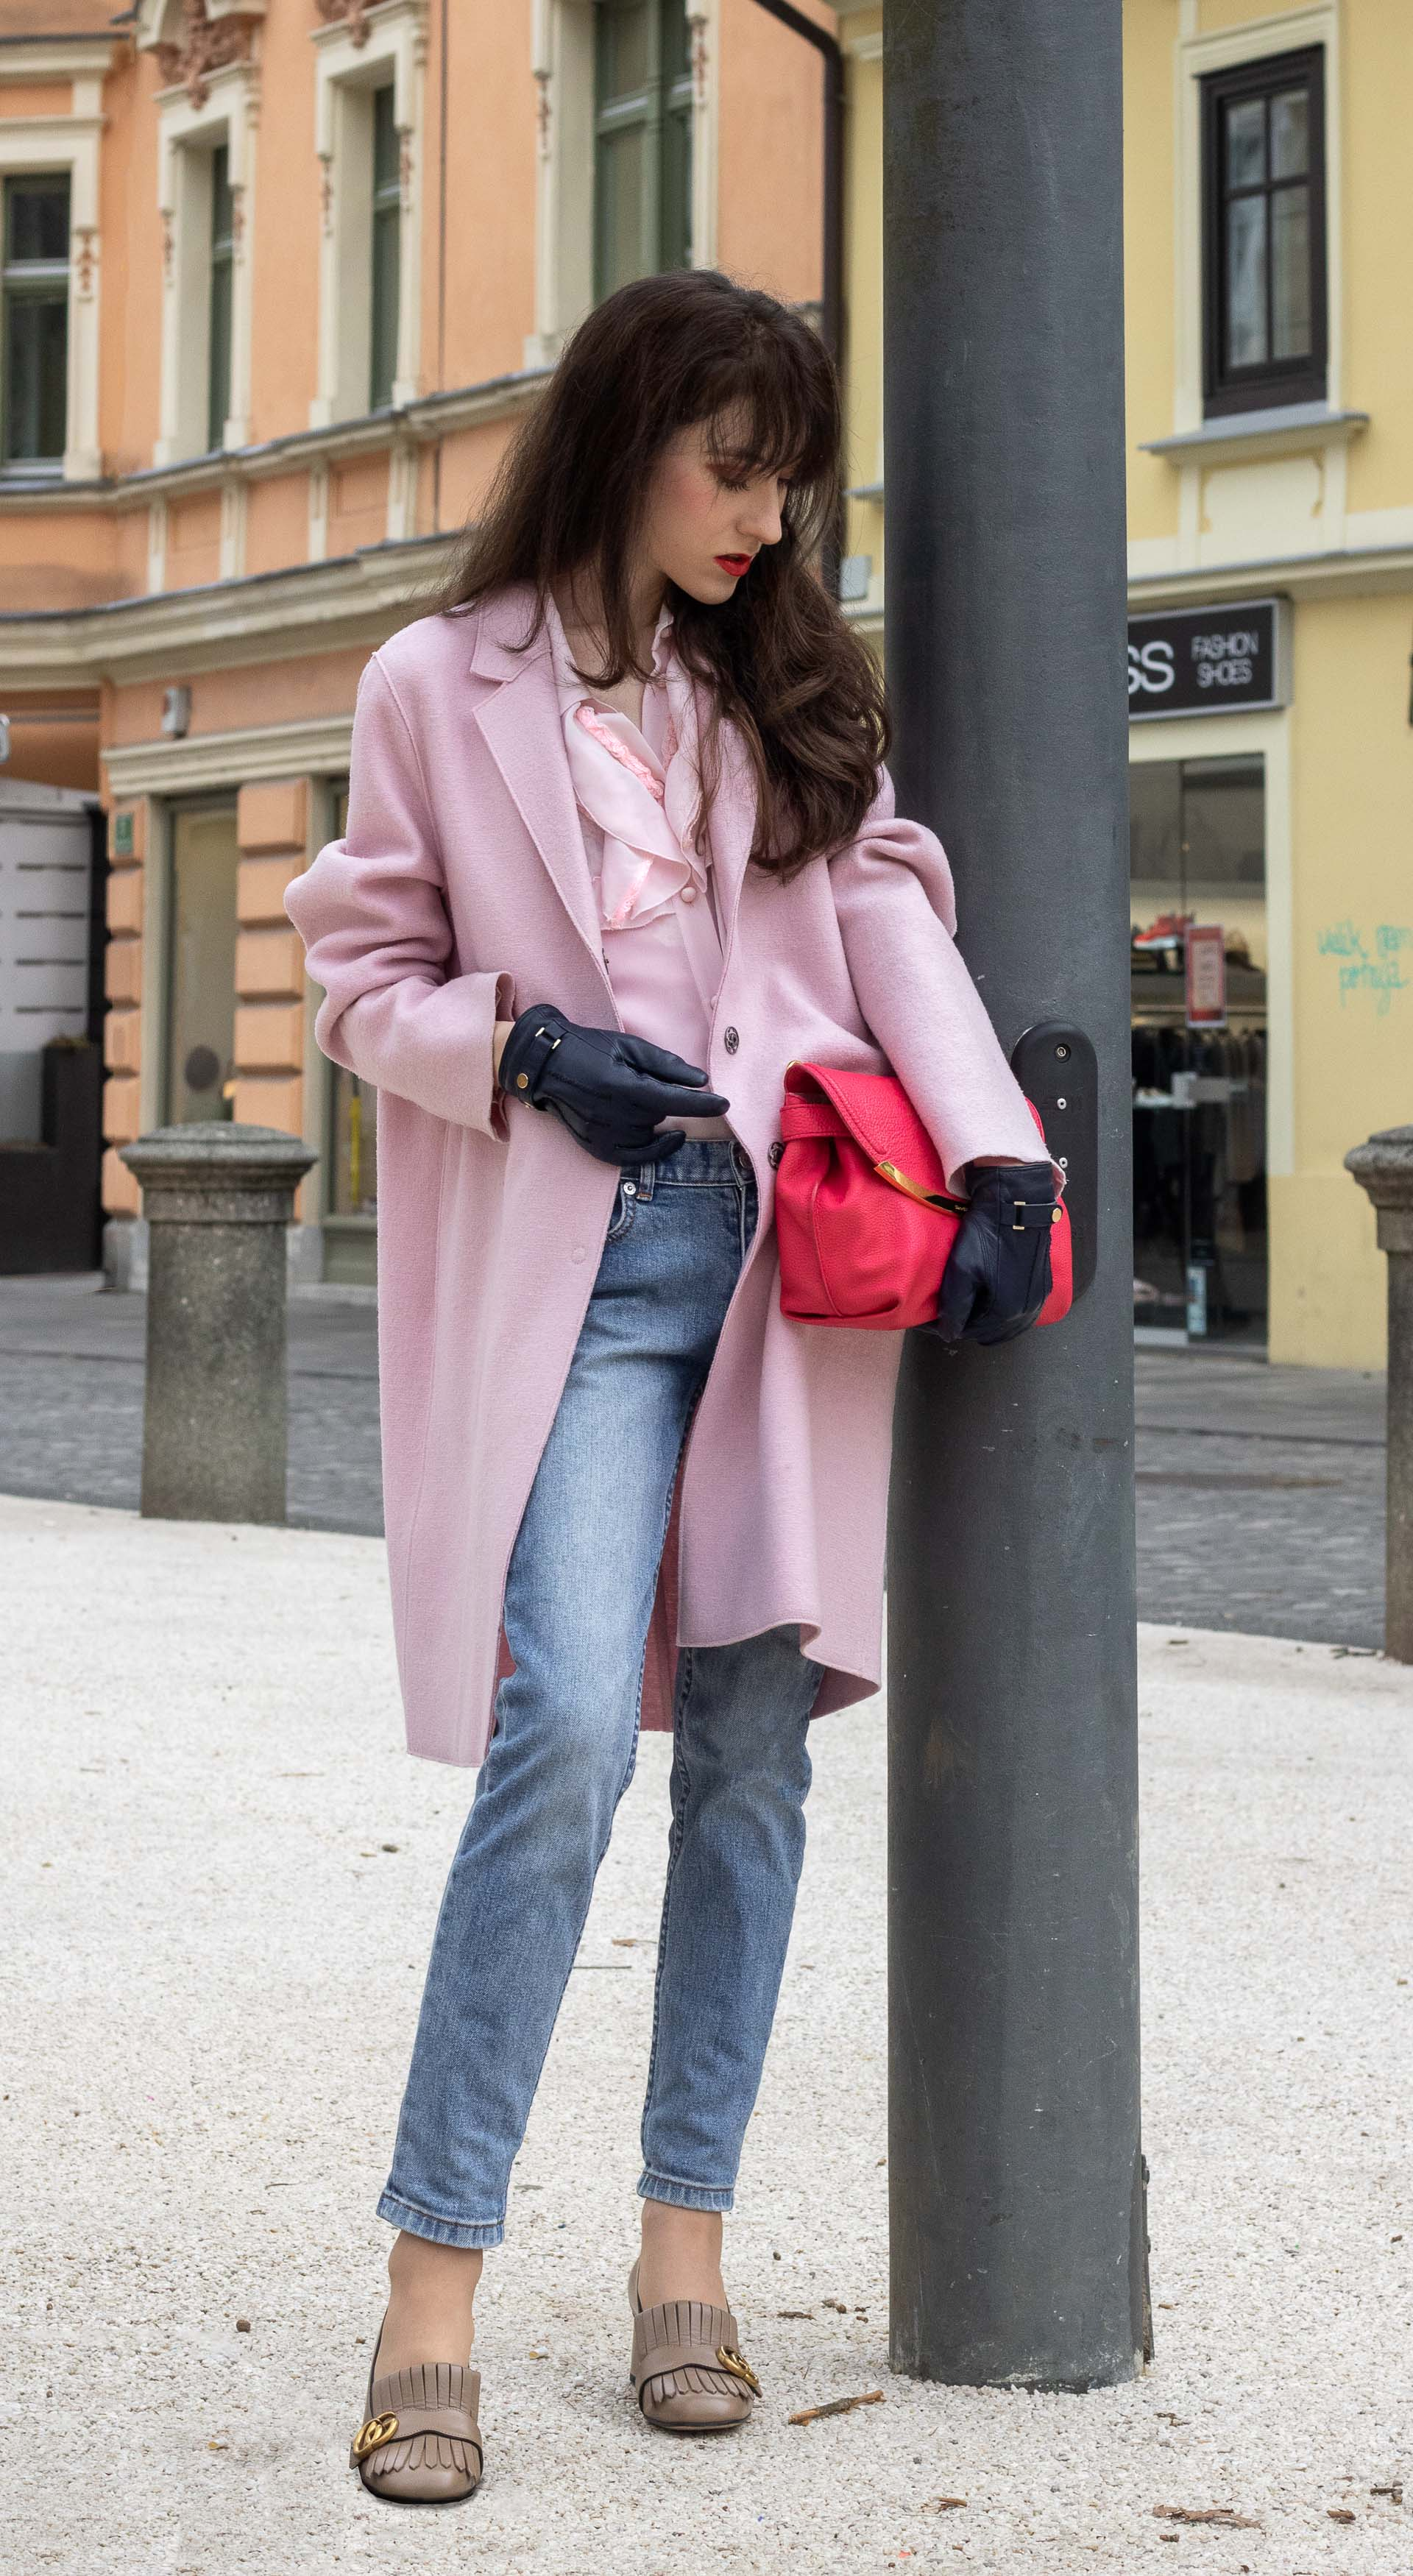 Fashion blogger Veronika Lipar of Brunette from Wall Street wearing A.P.C. blue jeans Harris Wharf London pink coat Red Valentino pink blouse pink pouch bag leather gloves Gucci heeled loafers on the street in-between seasons